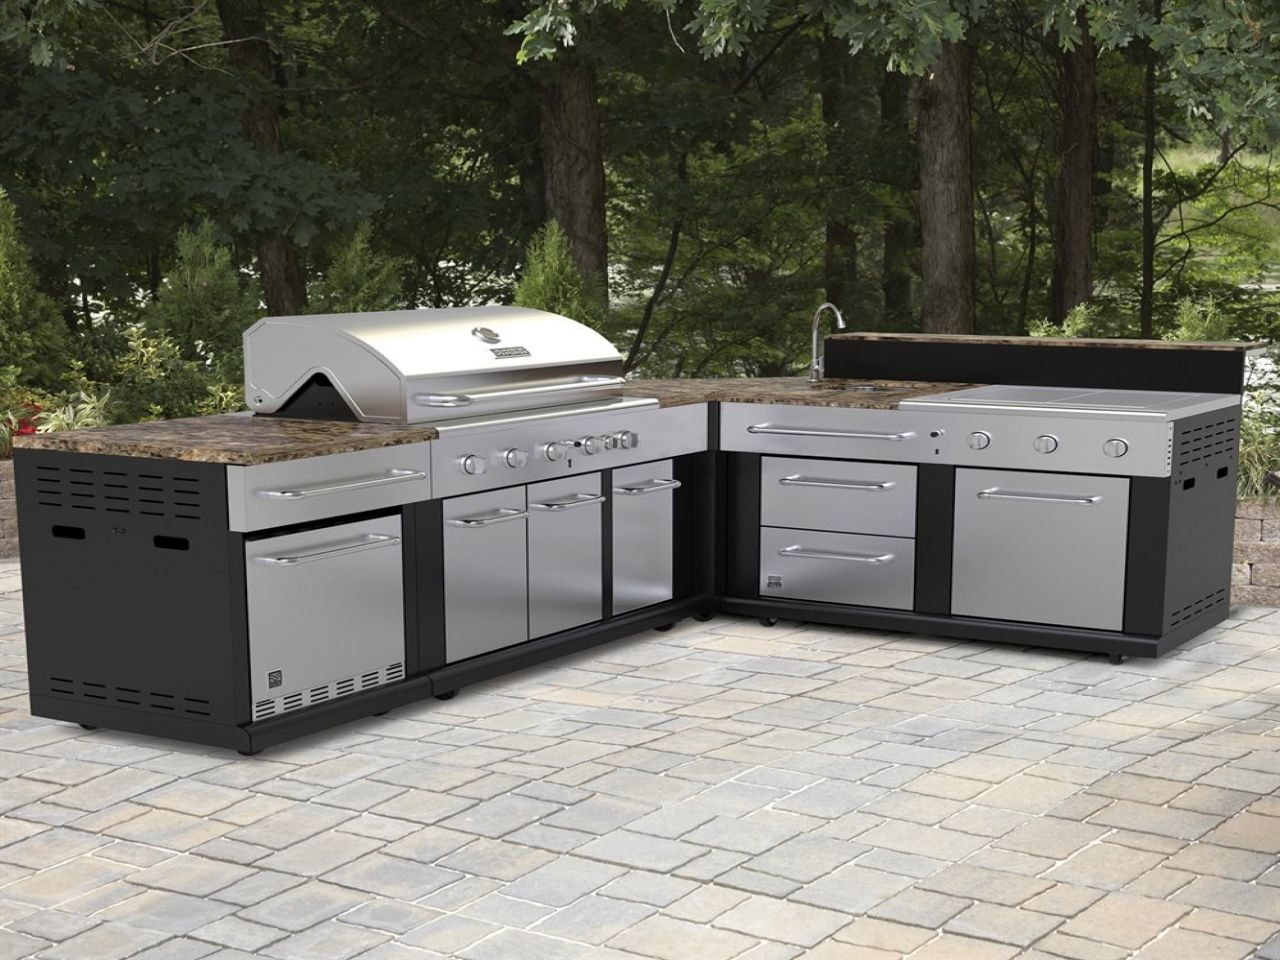 Kitchen Pellet Smoker Grill Combo Homemade Smokehouse Plans Built In Charcoal And Gas Grill Outdoor Kitchen Grill Modular Outdoor Kitchens Outdoor Kitchen Kits